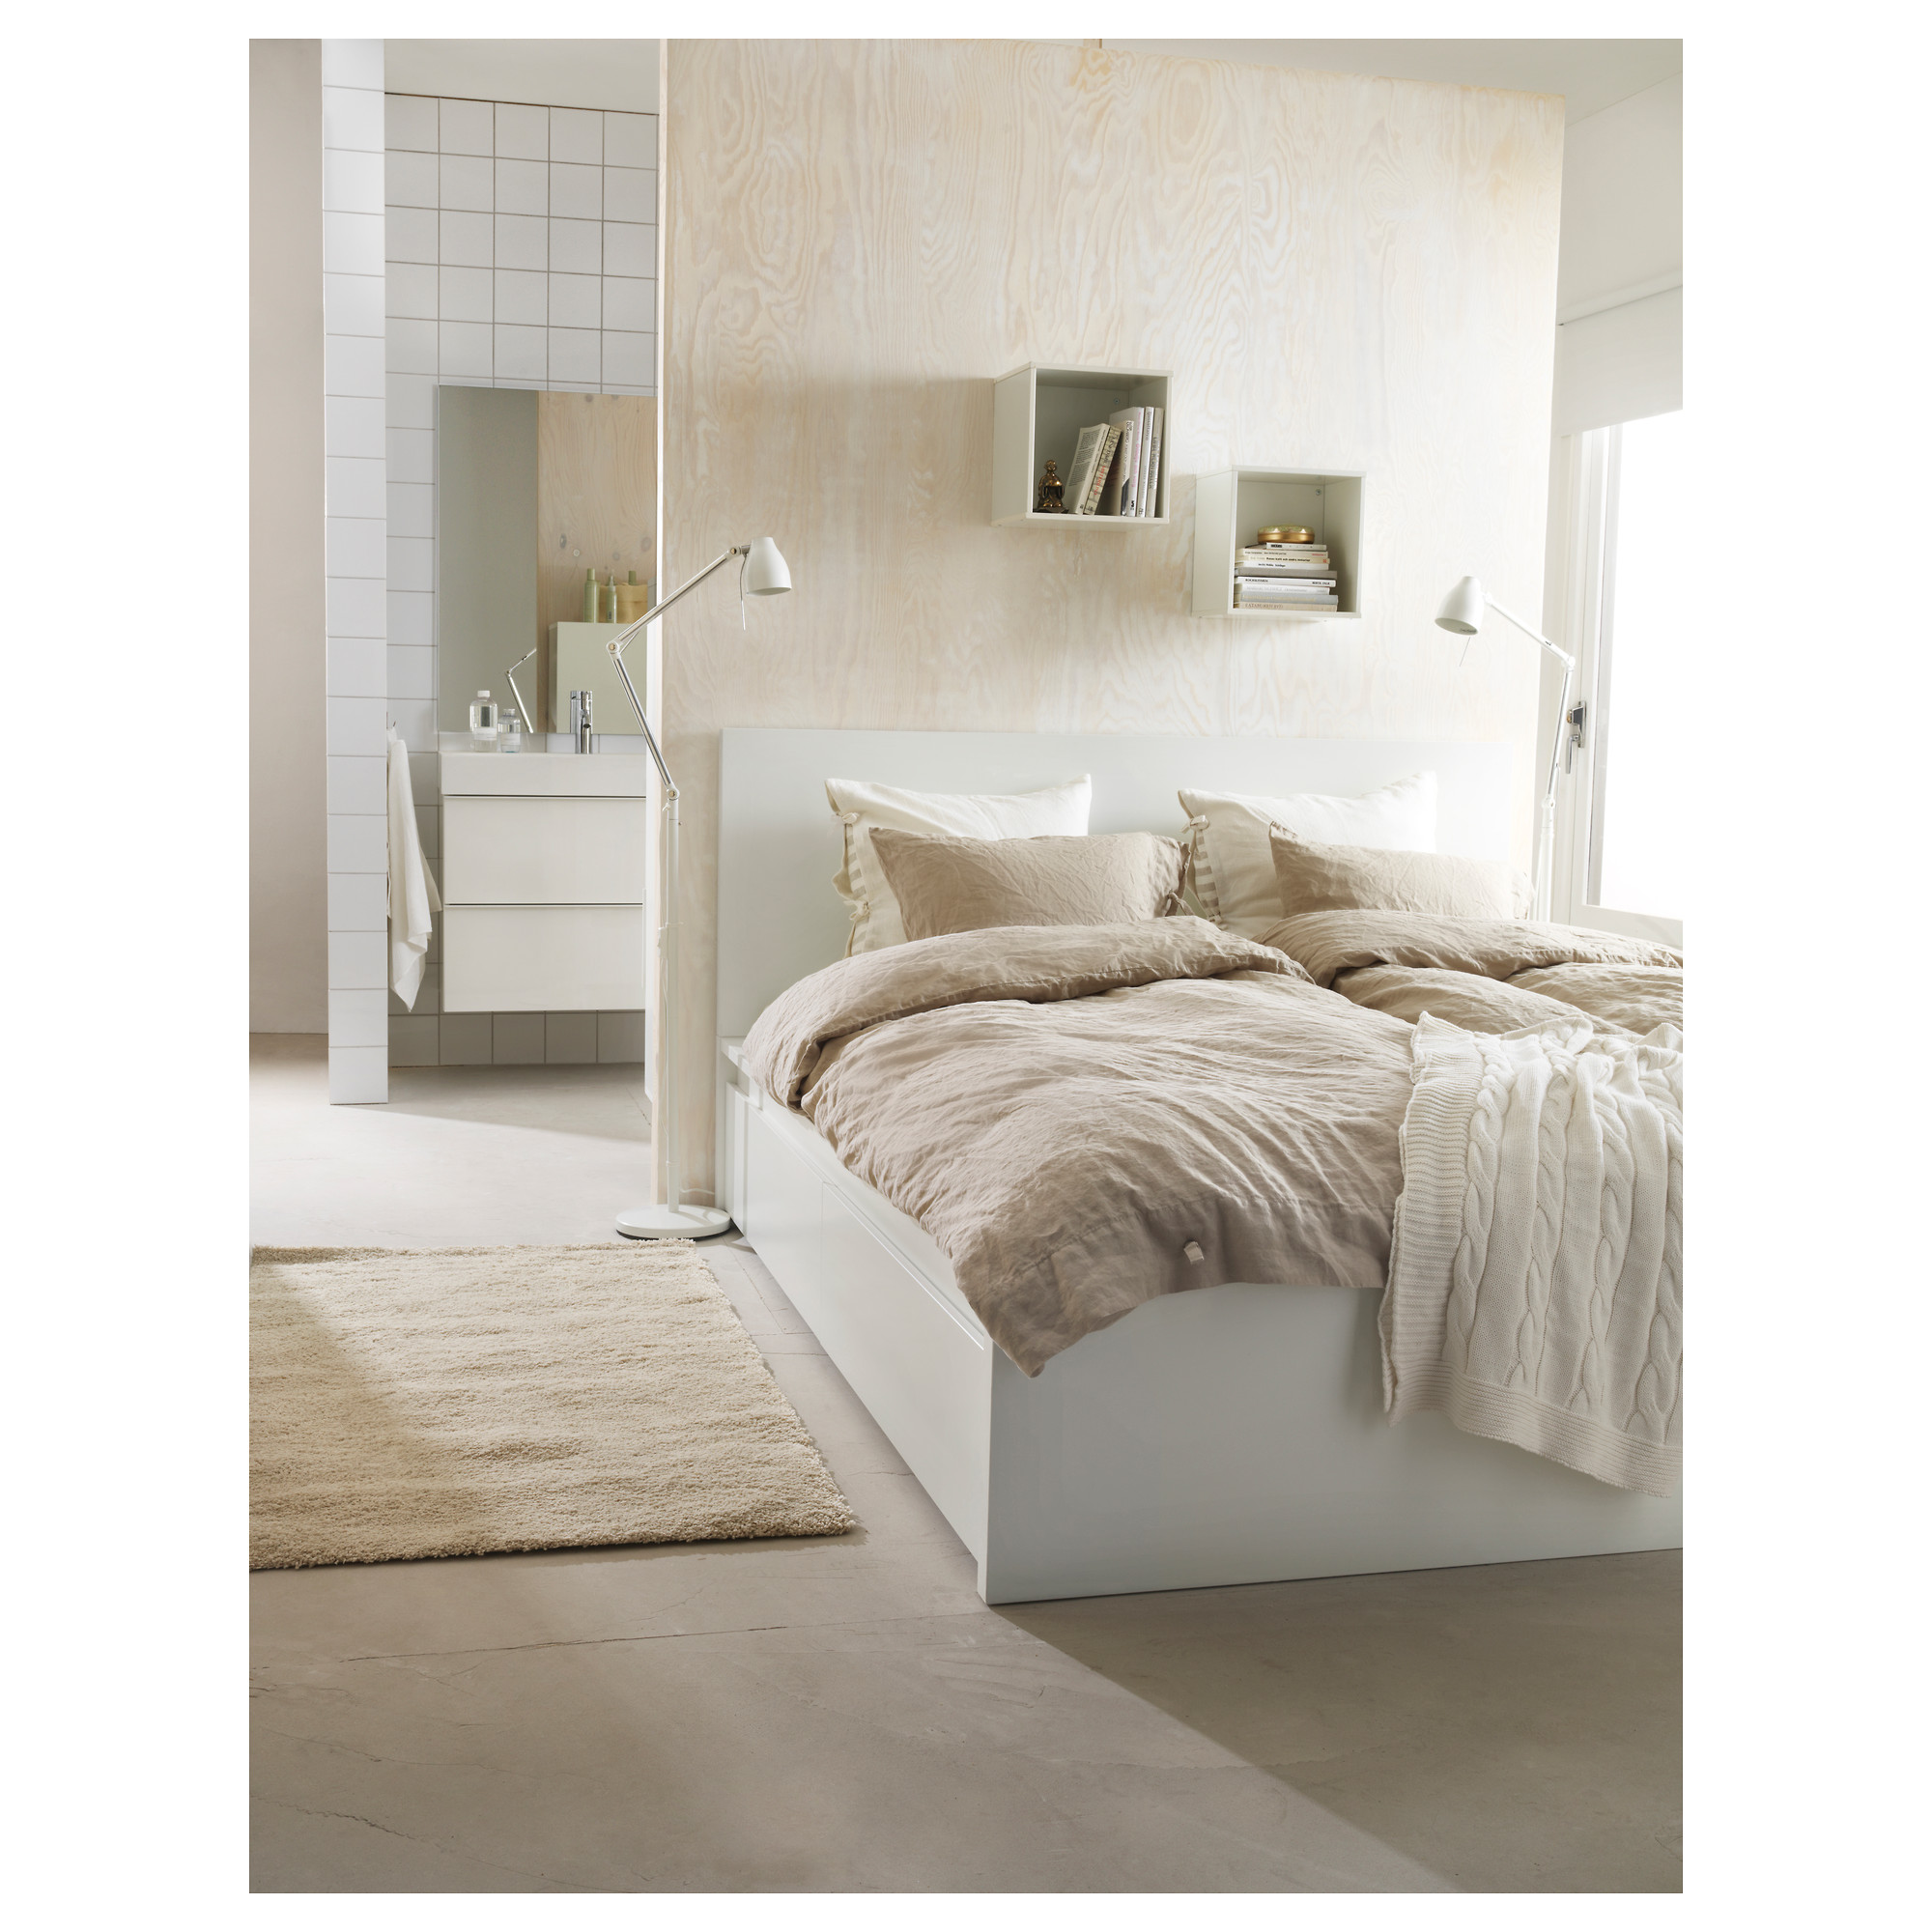 Malm Bed Frame High W 4 Storage Boxes Lonset Queen Ikea Hong Kong And Macau